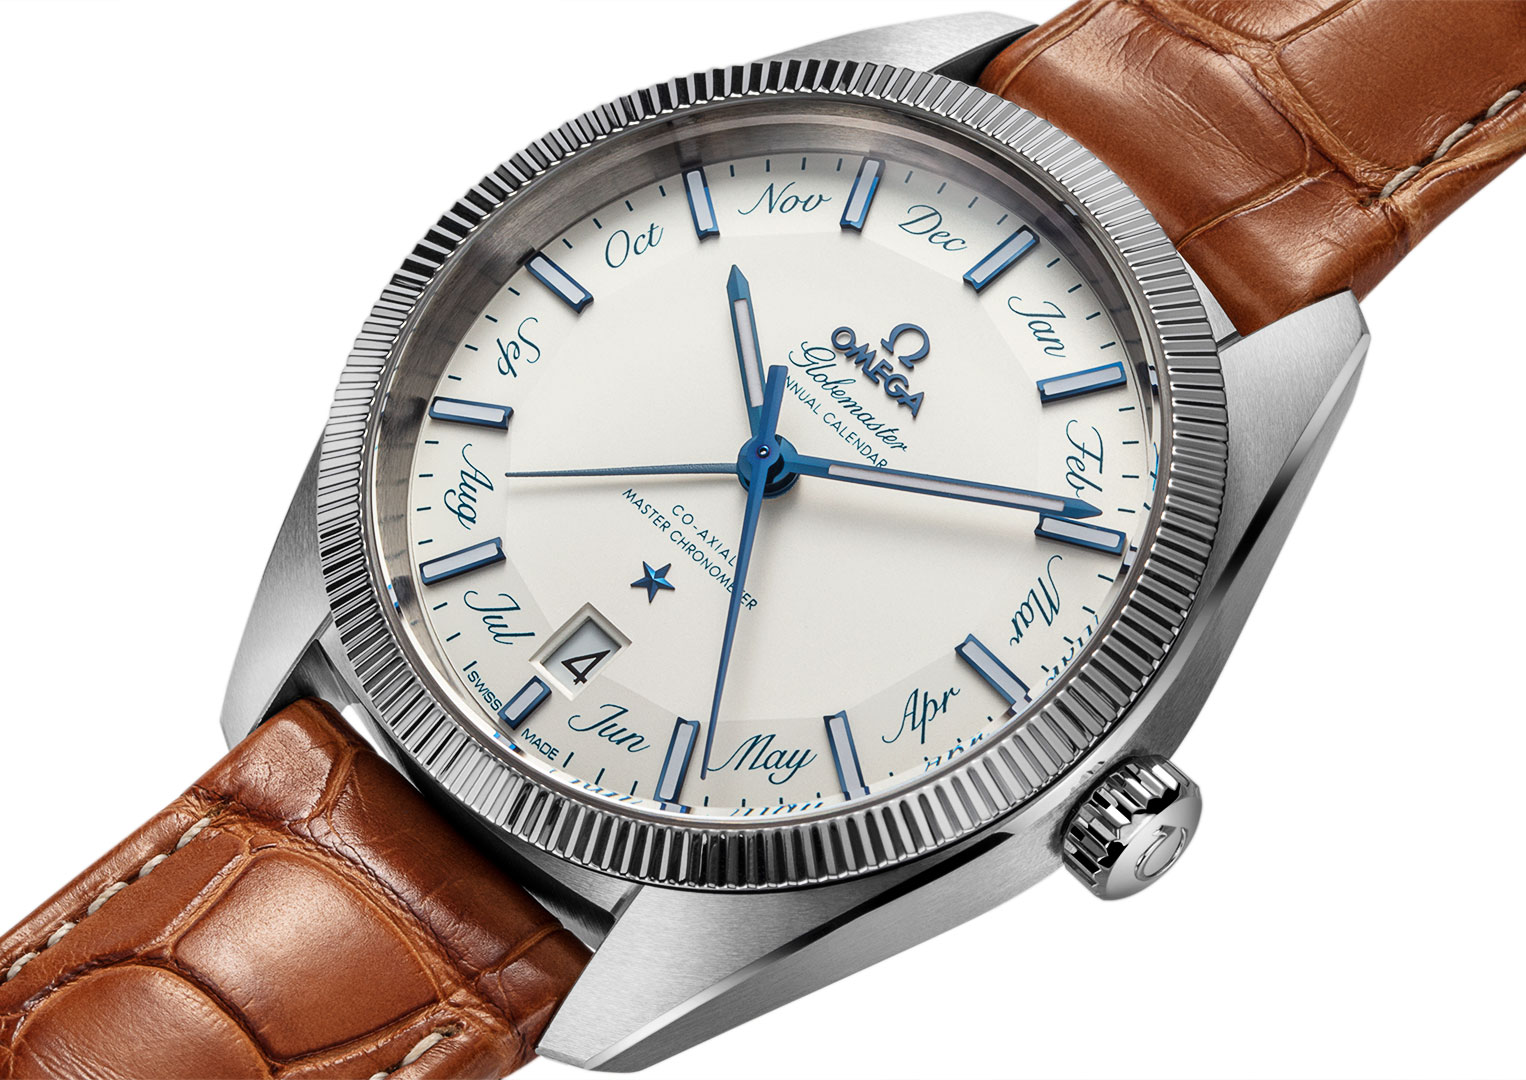 Fun fact: the first watch to receive a METAS certification was the Omega Globemaster